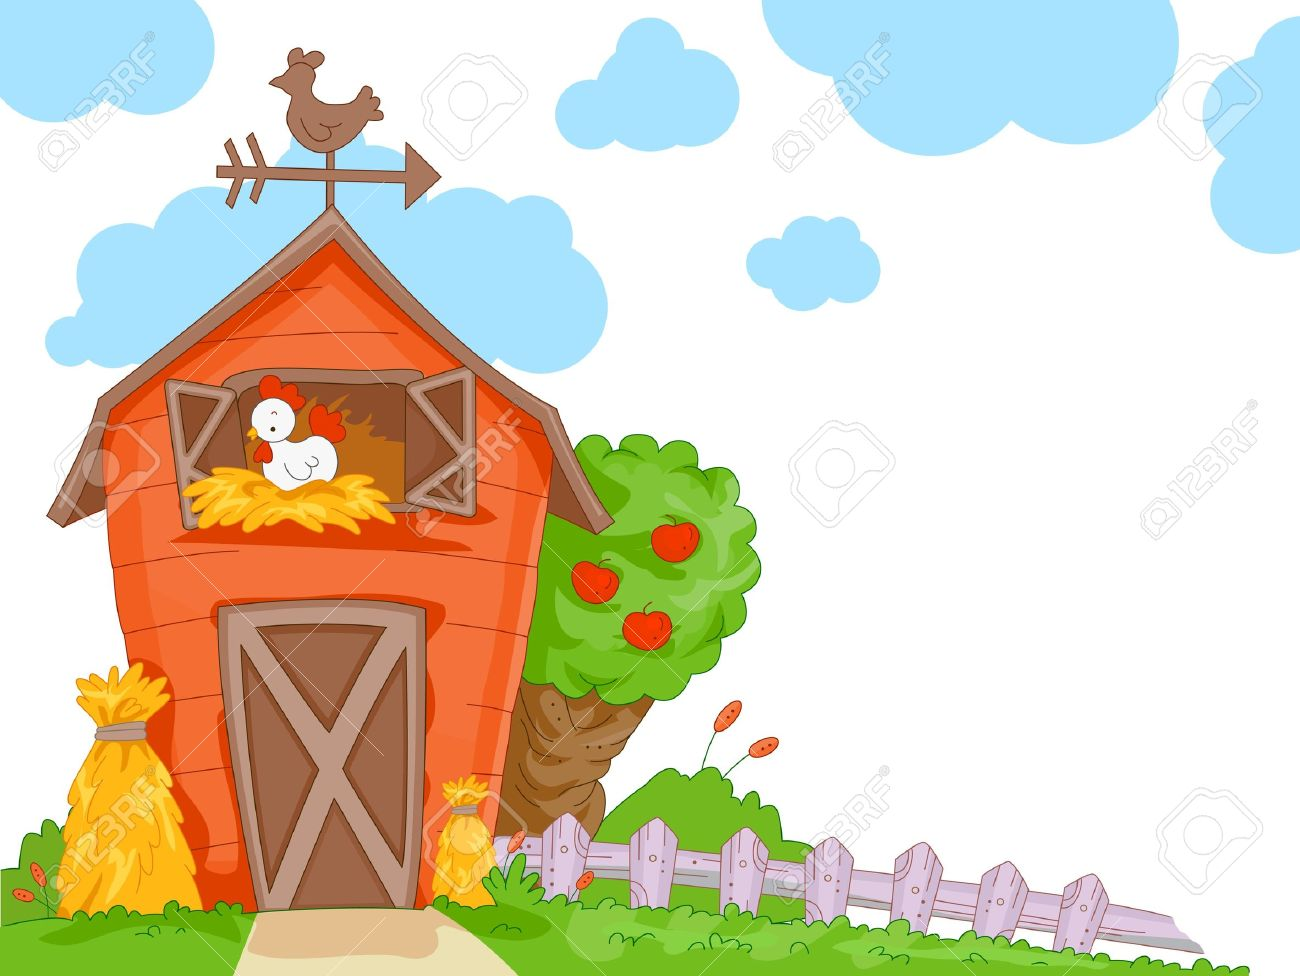 A Cute Barn With a Clear View of the Chicken Nesting Inside for...